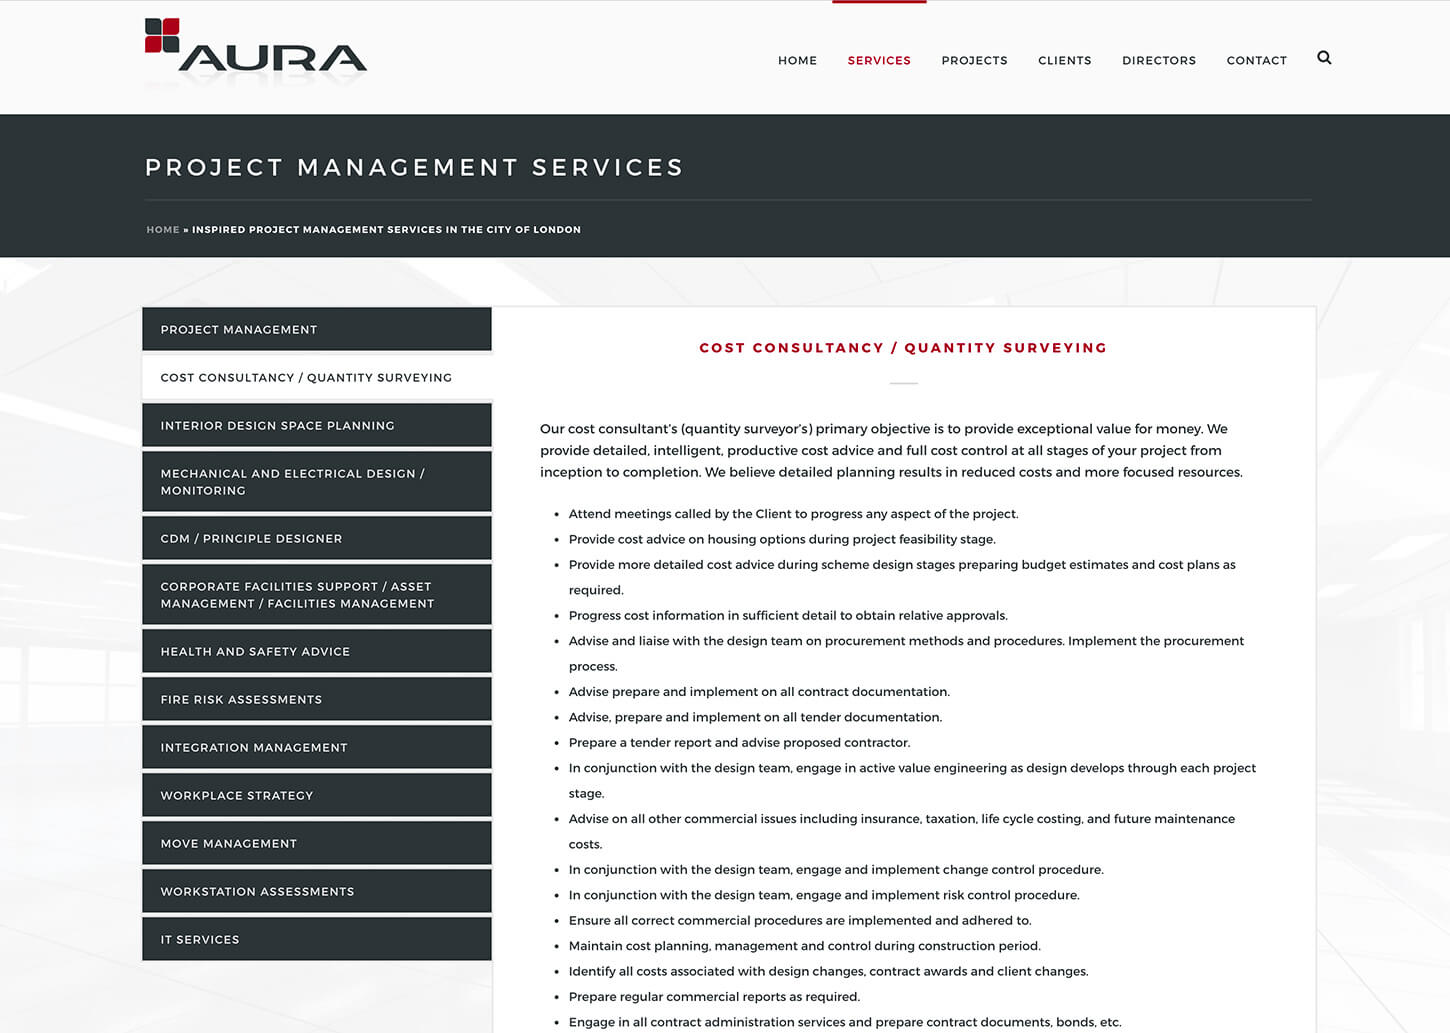 Project management company website: Project management page